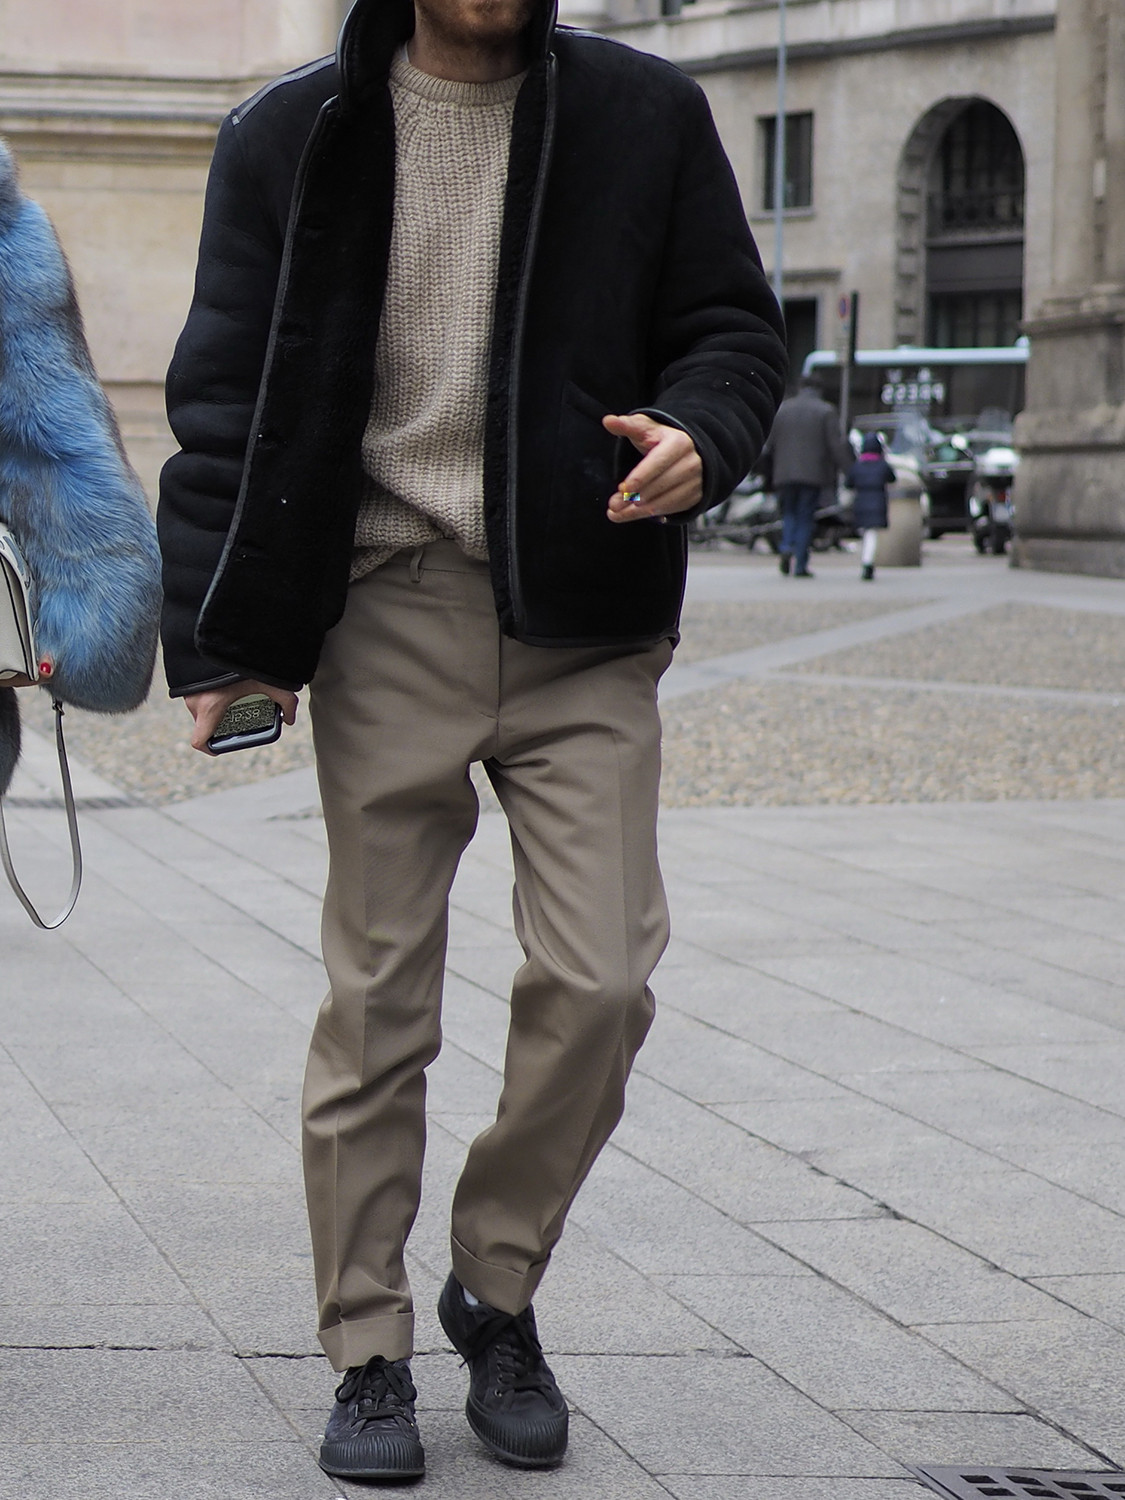 Men's outfit idea for 2021 with black jacket, cable-knit jumper, neutral chinos, black trainers / sneakers. Suitable for autumn and winter.